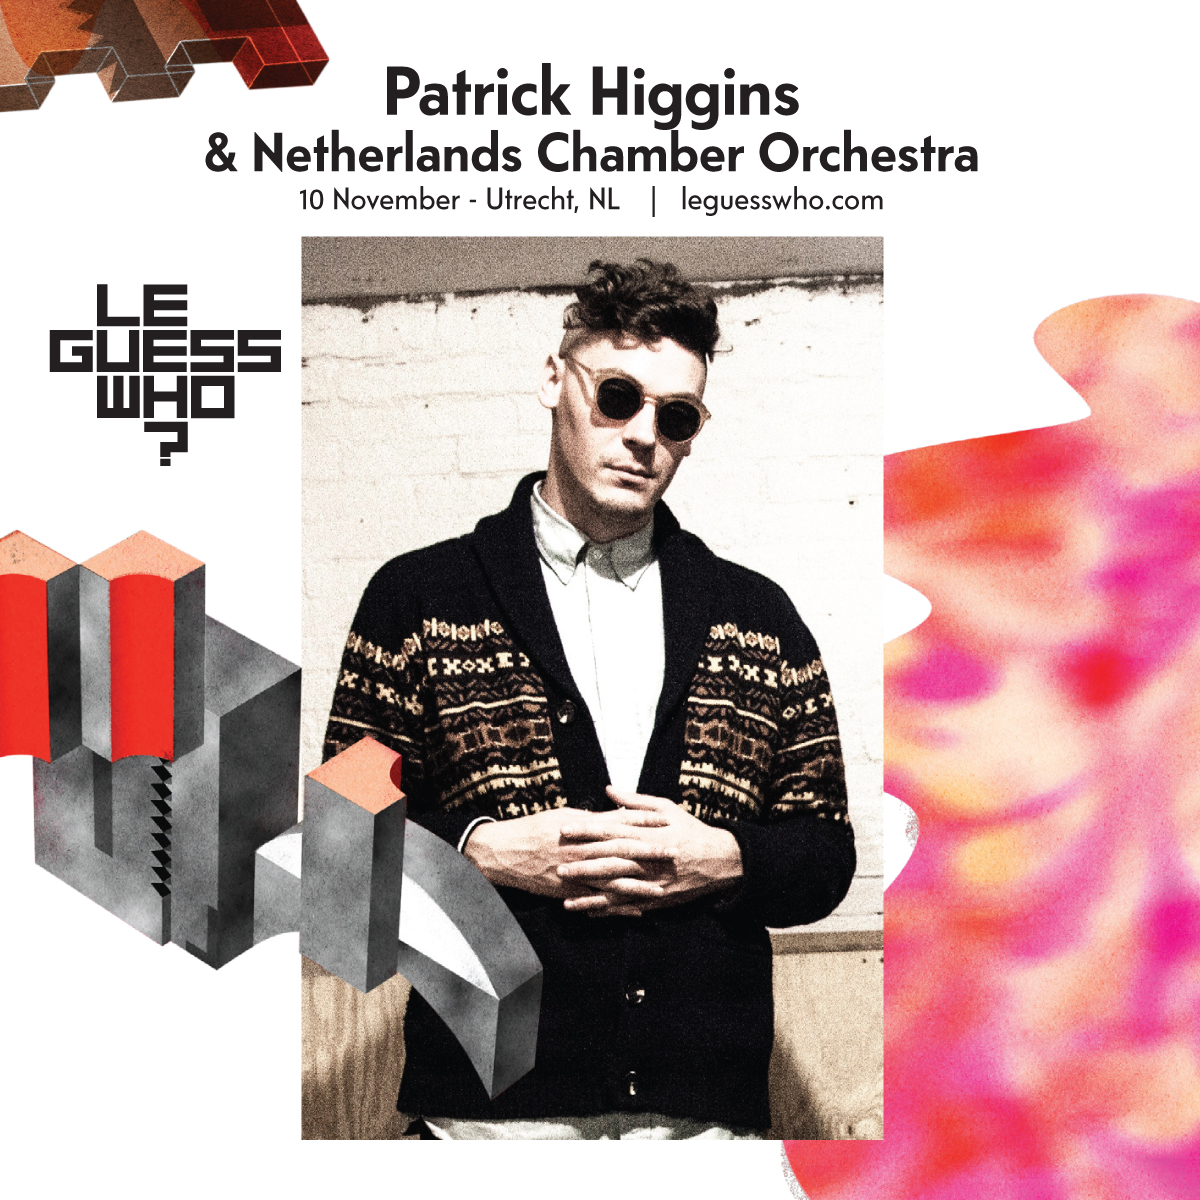 Meet avant-garde guitarist/composer Patrick Higgins, live with Netherlands Chamber Orchestra